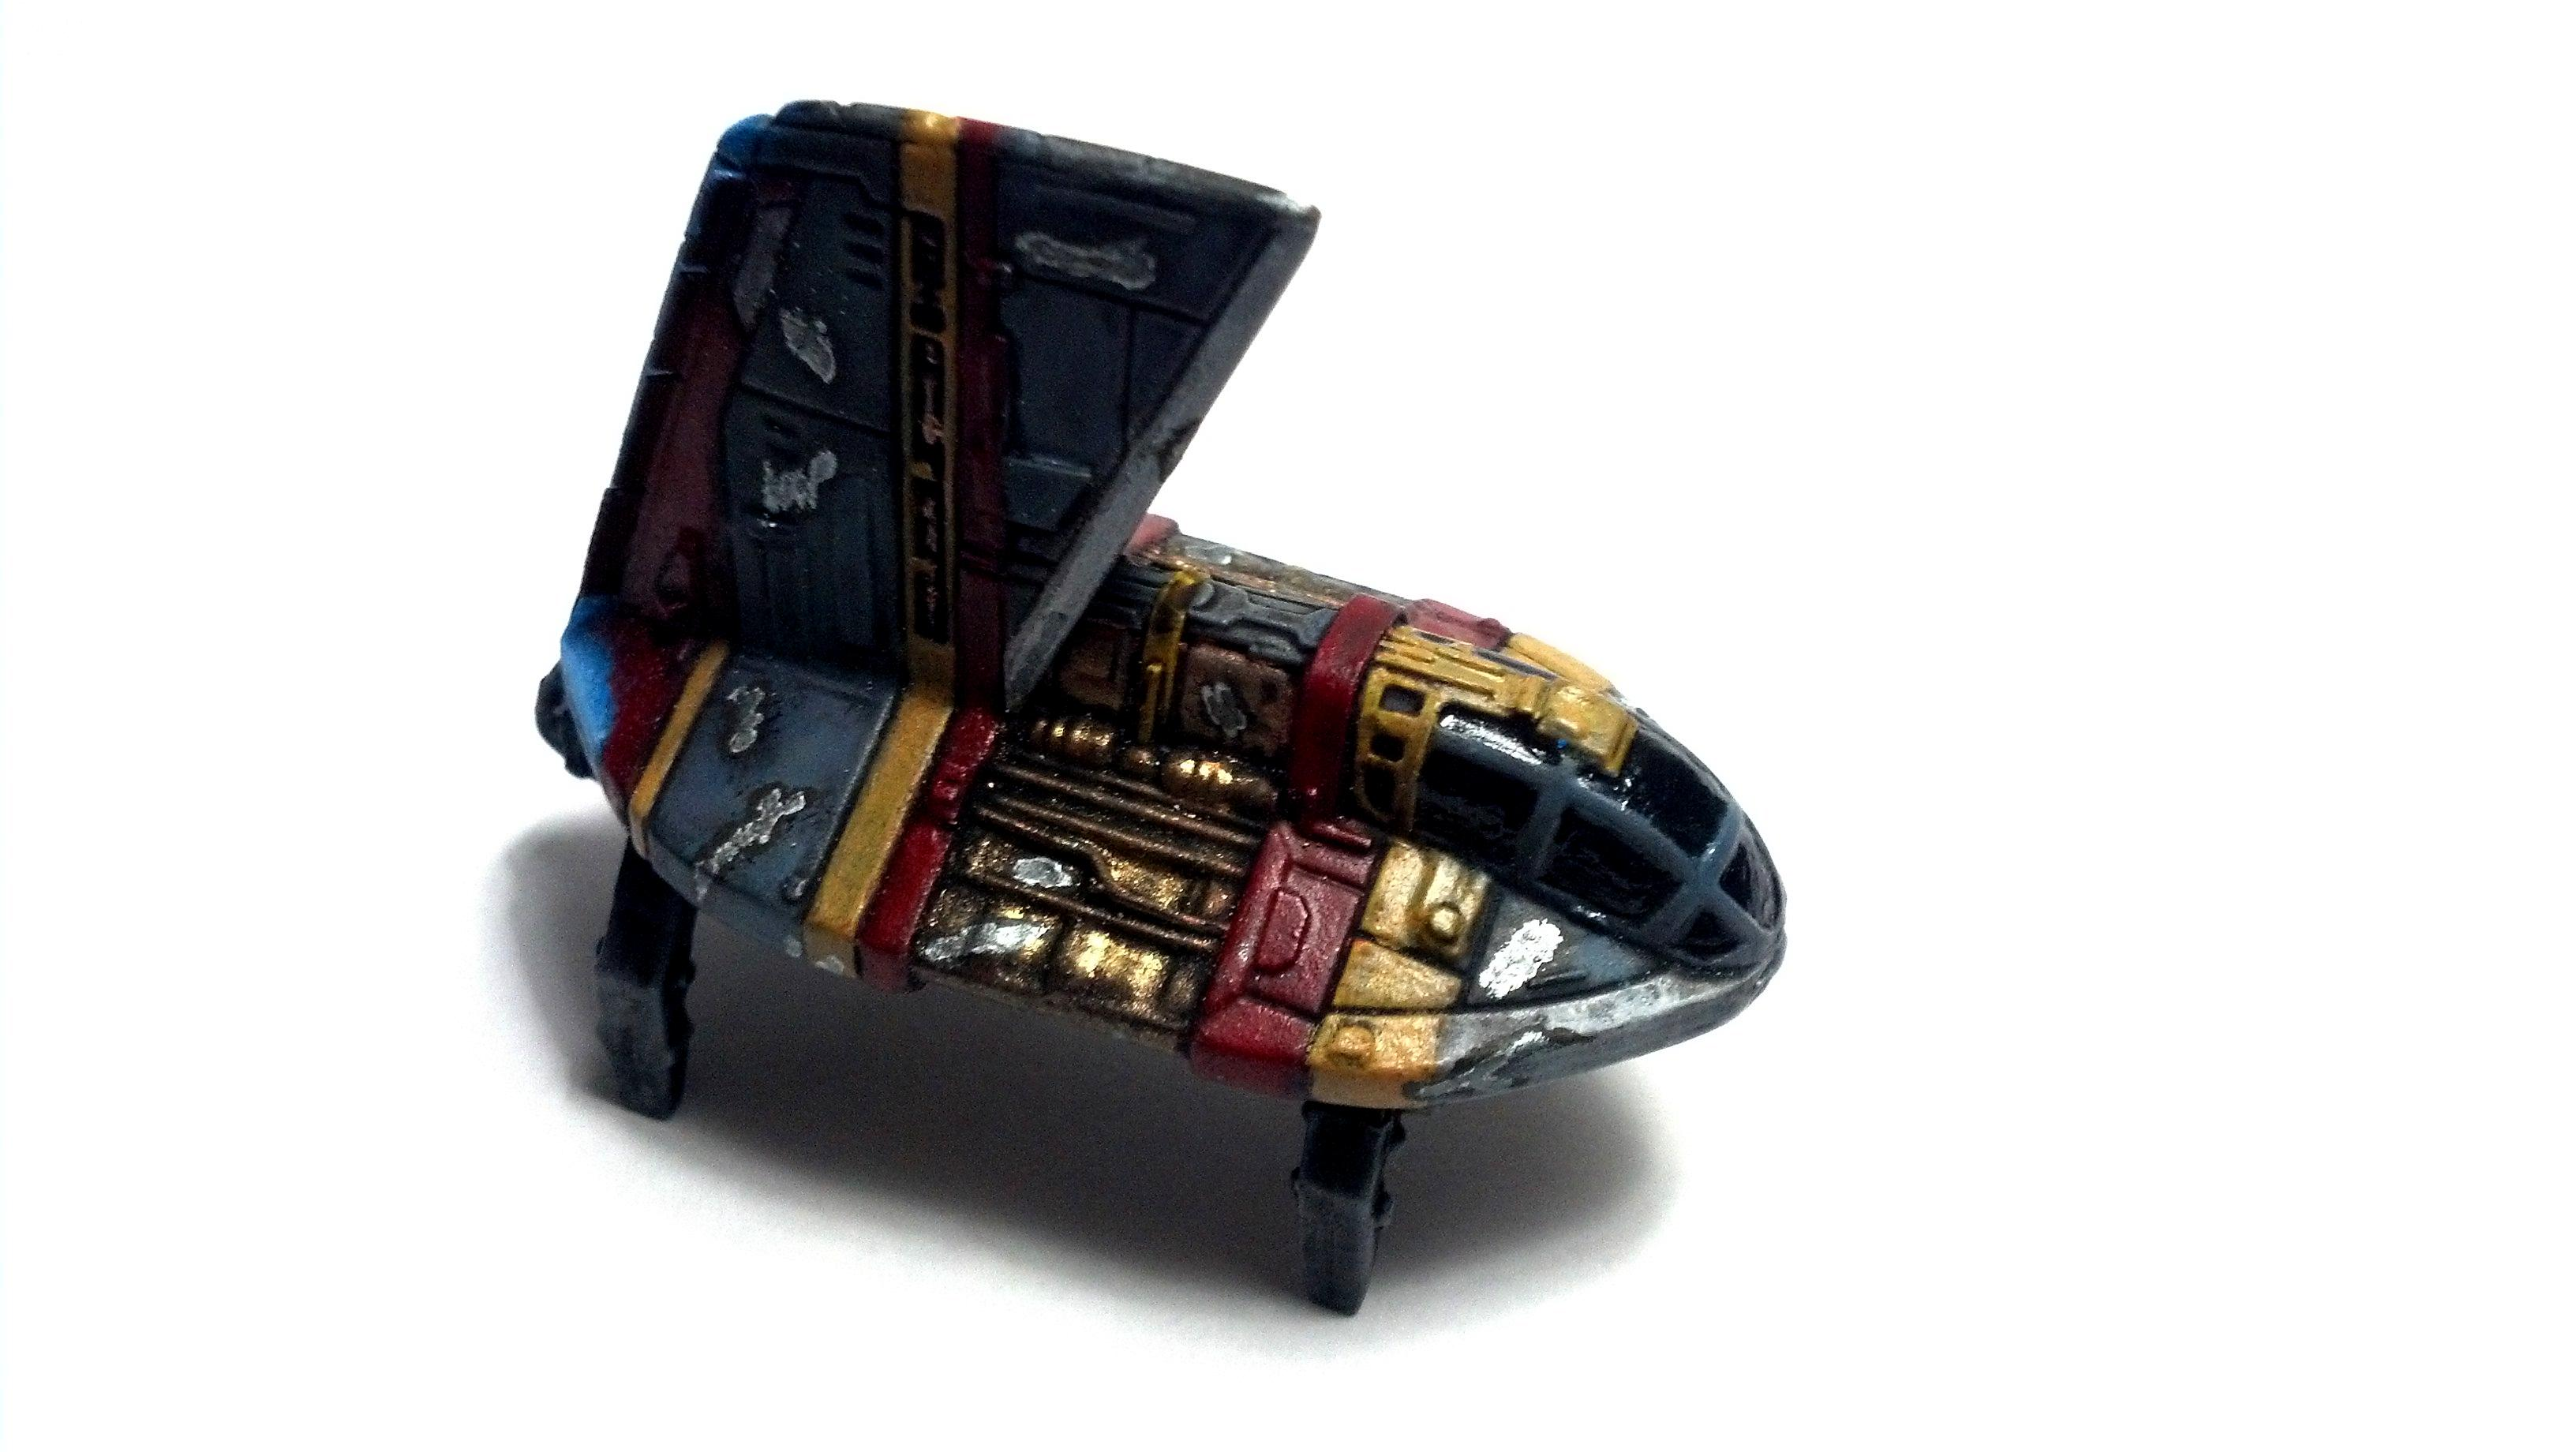 1/270, 1:270, Long Range, Miniature, Modification, Neimoidian Shuttle, Refueler, Star Wars, X-wing Miniature Board Game